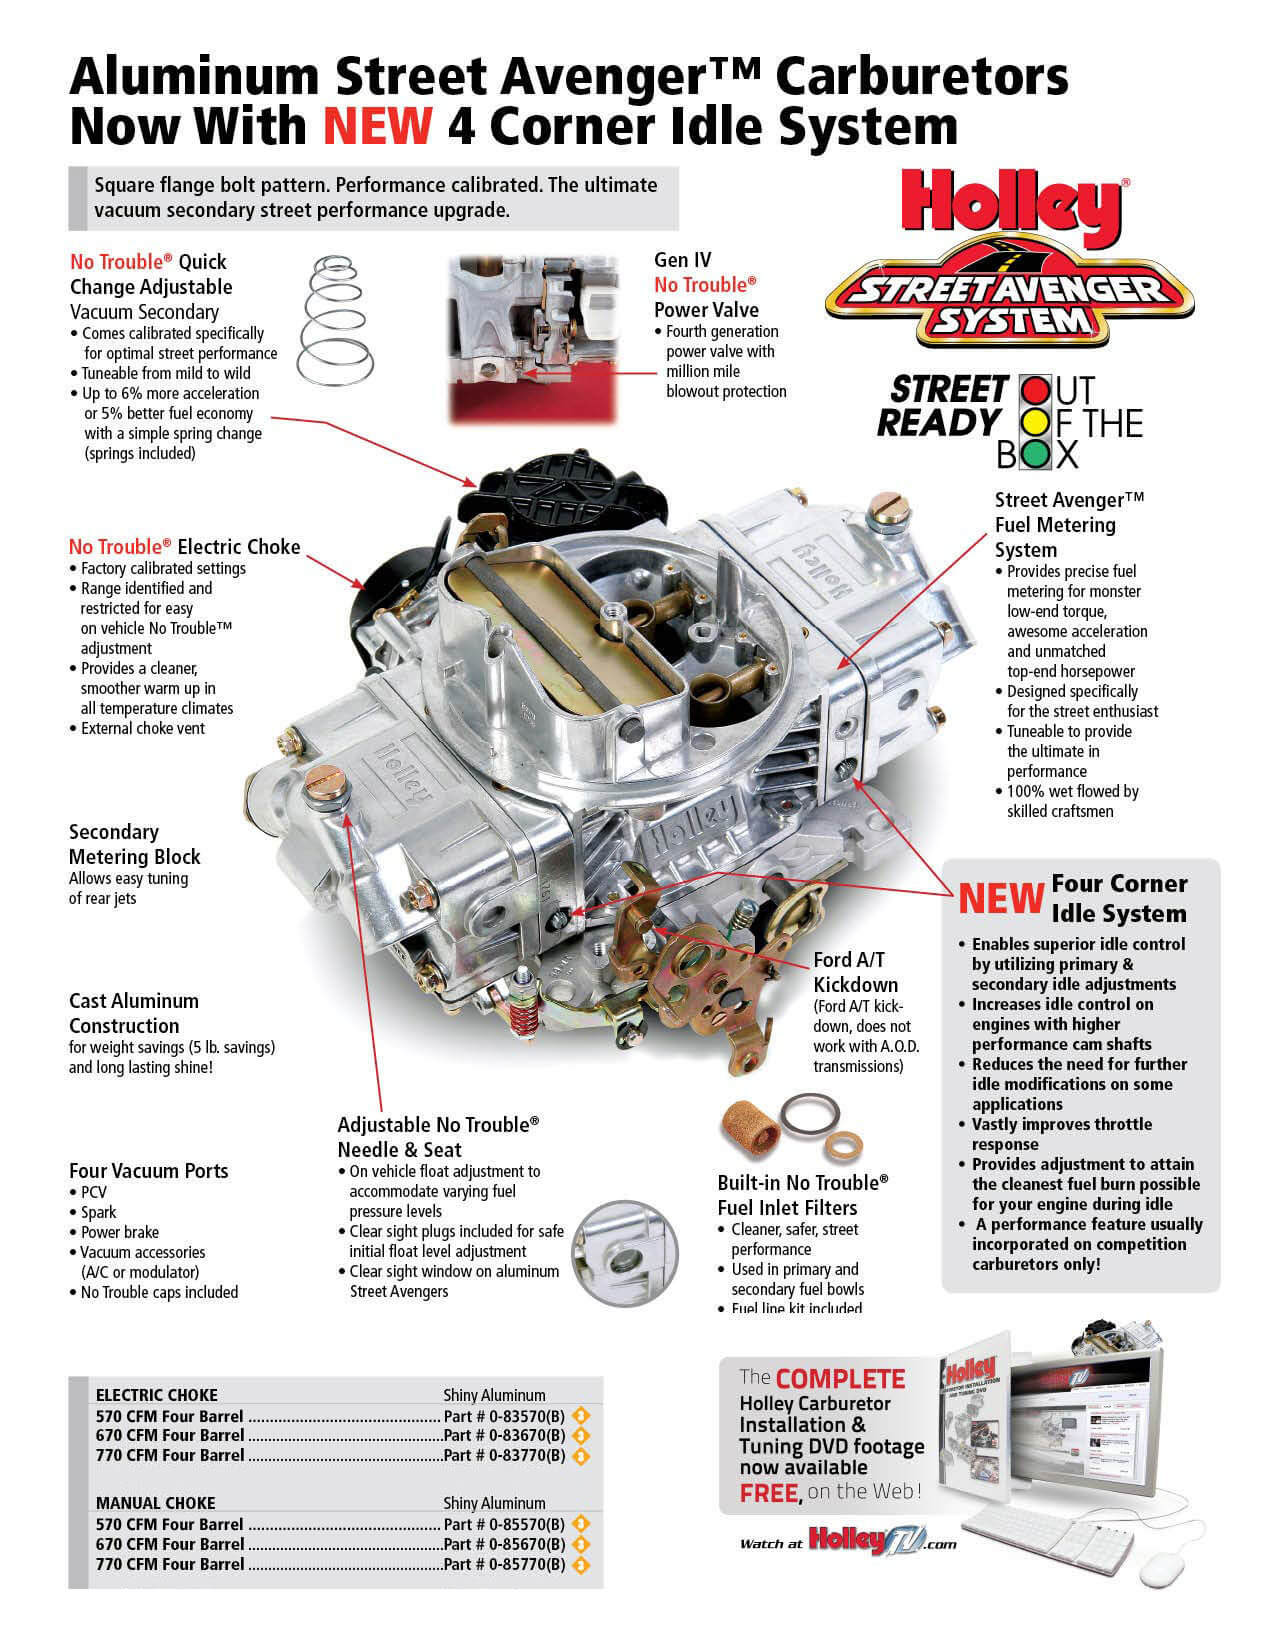 1967 1991 Amc V8 Holley 770 Cfm Street Avenger Aluminum Carburetor Eagle Wiring Diagram Vacuum Secondaries Manual Choke